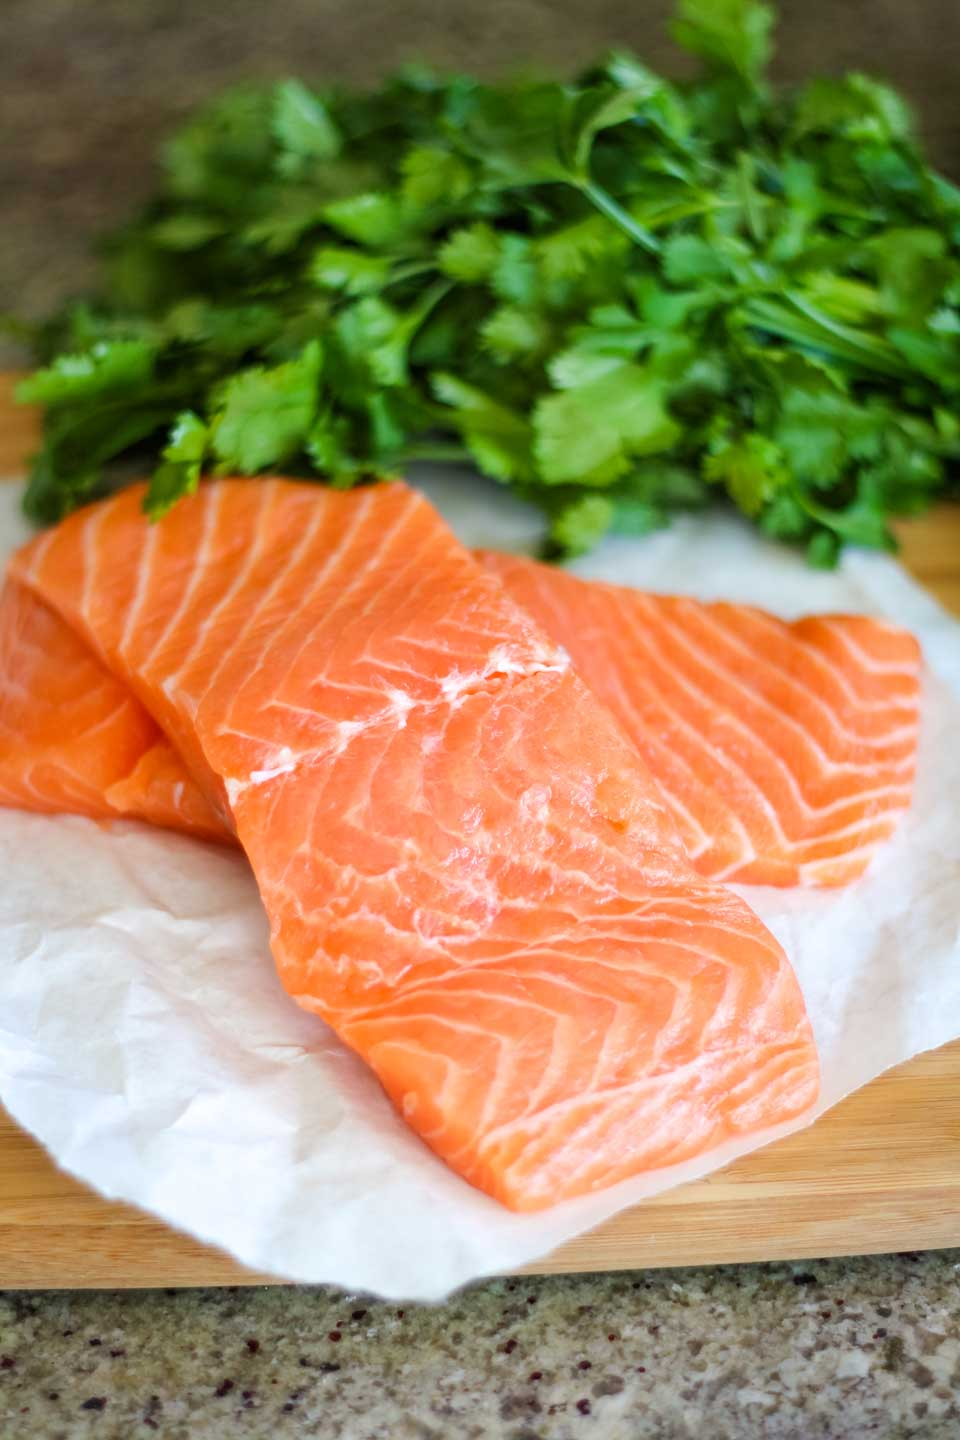 gorgeous fresh salmon filets on butcher paper, with a bunch of fresh parsley in the background